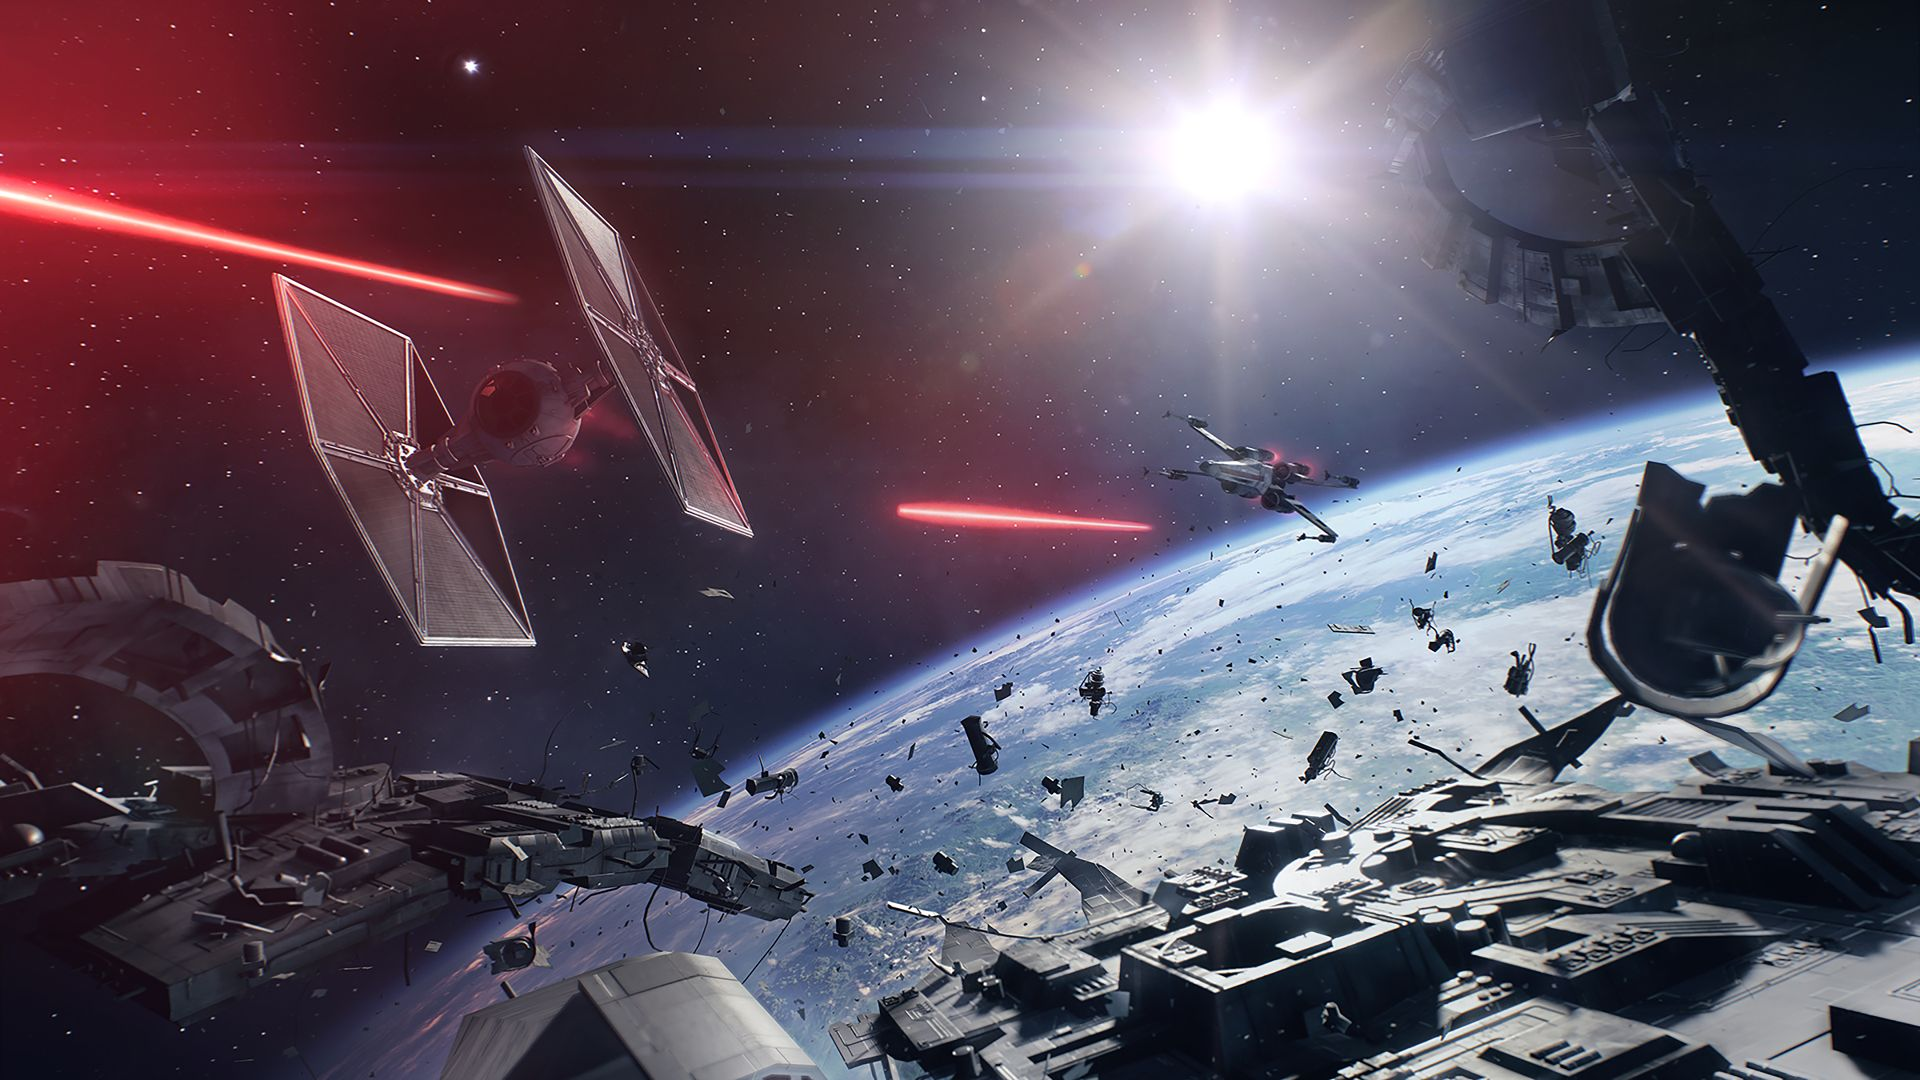 Star Wars Battlefront 2 Space Combat To Be Shown Off For The